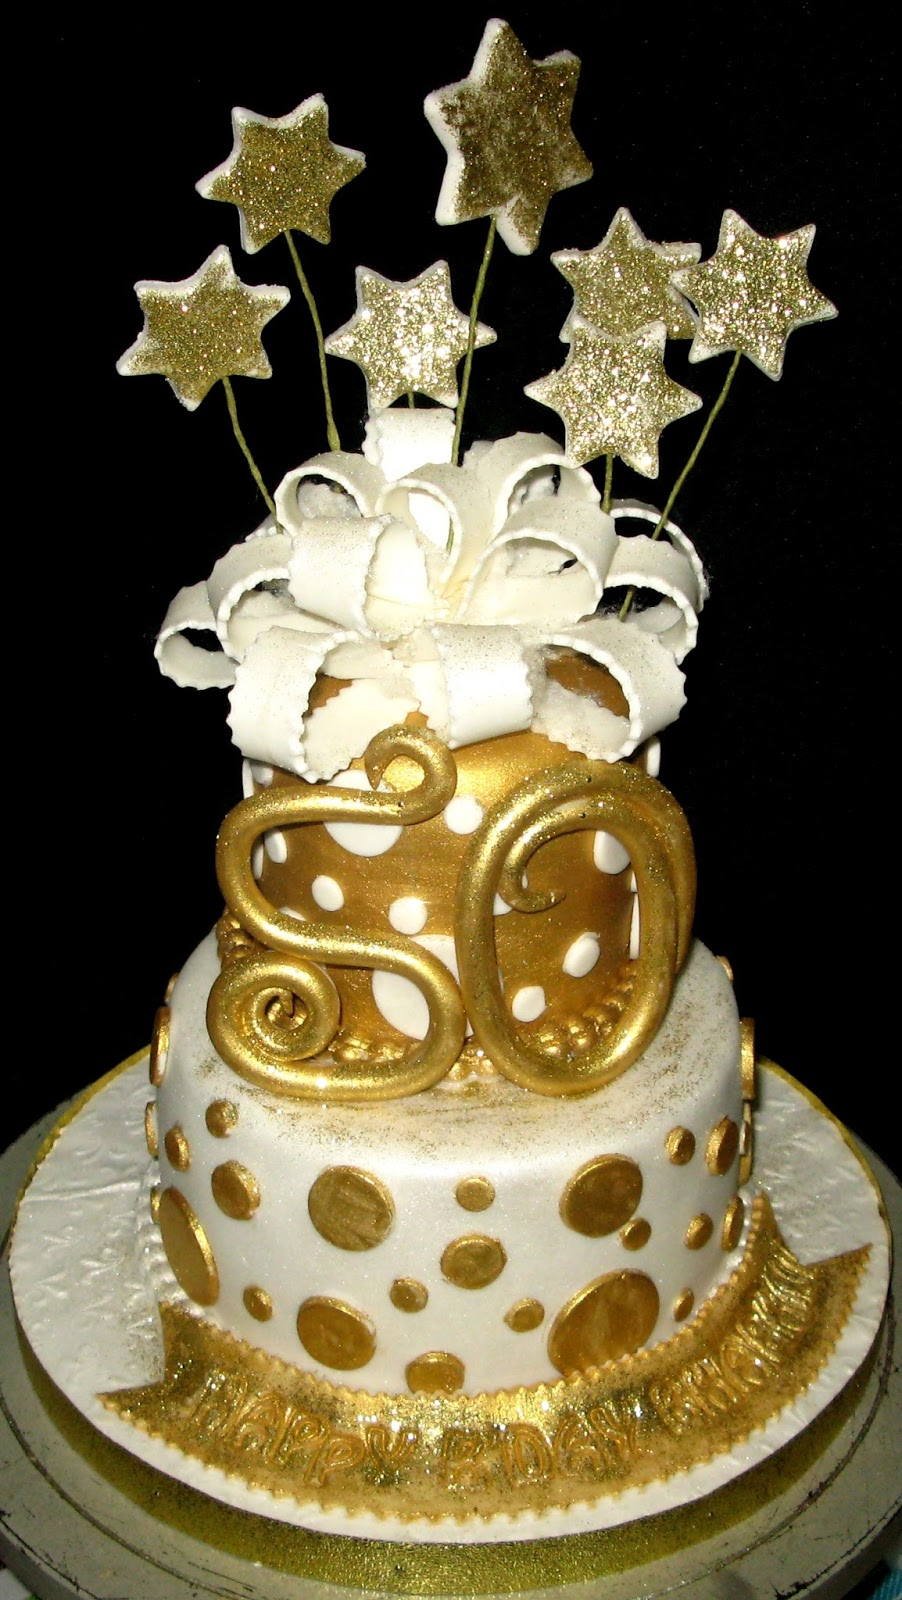 Sugarcraft By Soni